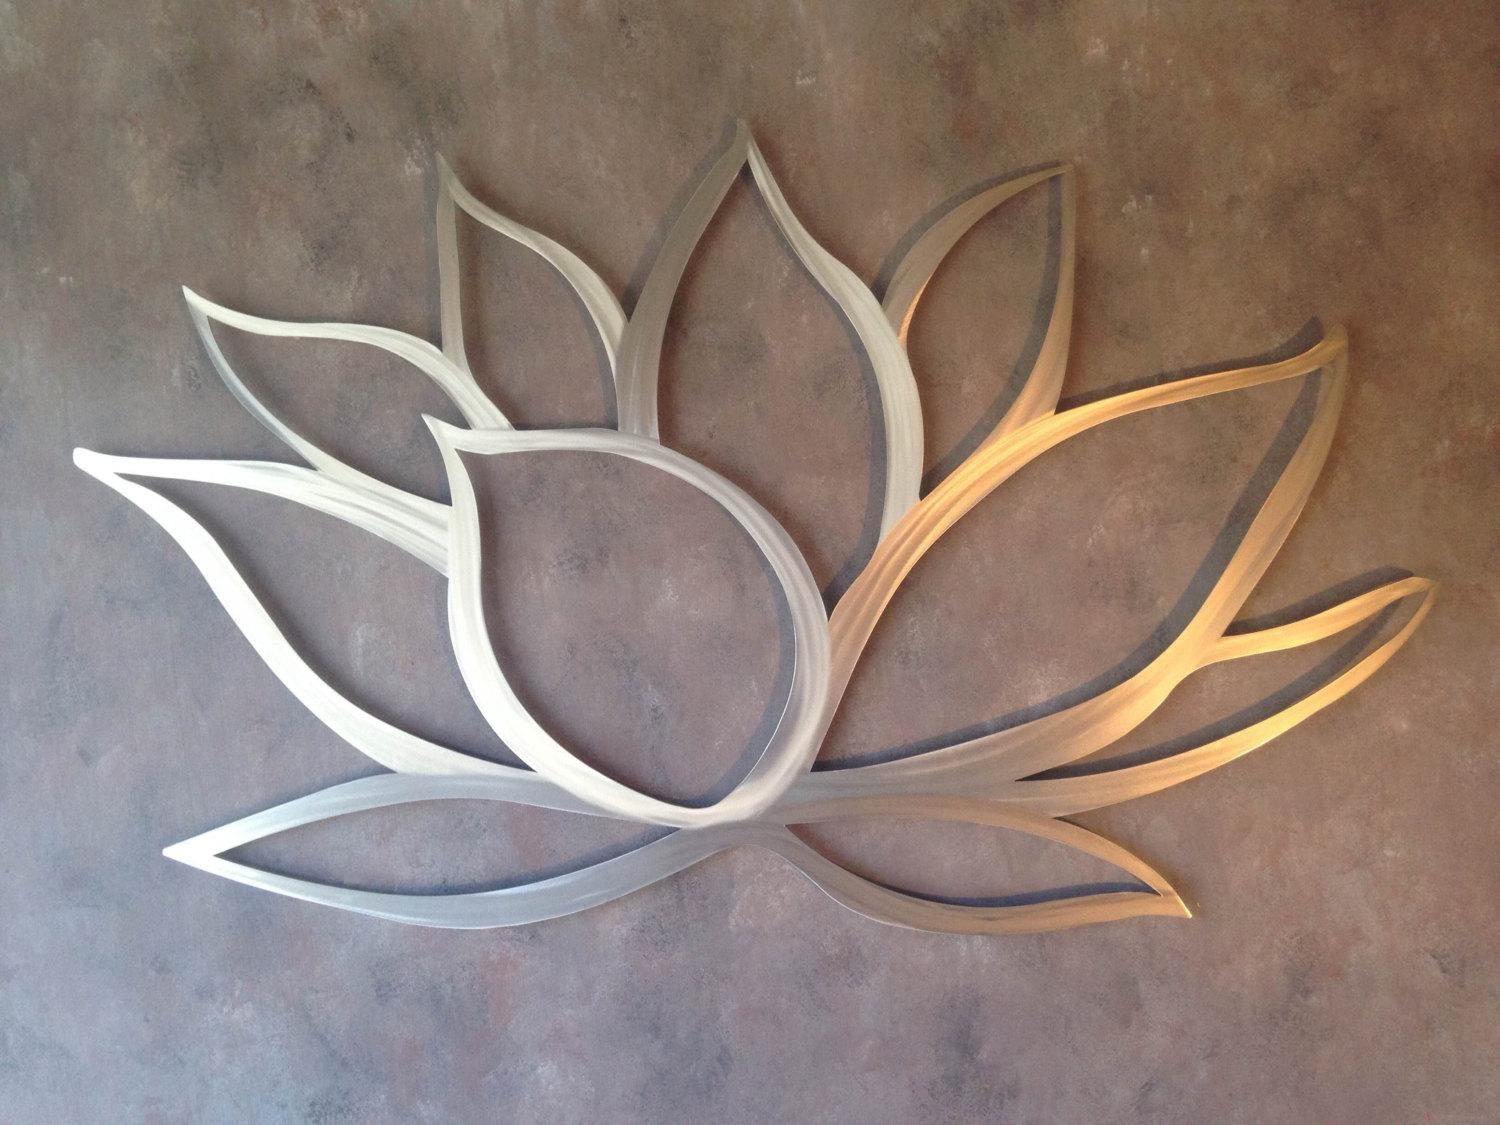 Lotus Flower Metal Wall Art Ideas Also Bathroom Picture Regarding Metal Wall Art For Bathroom (Image 10 of 20)